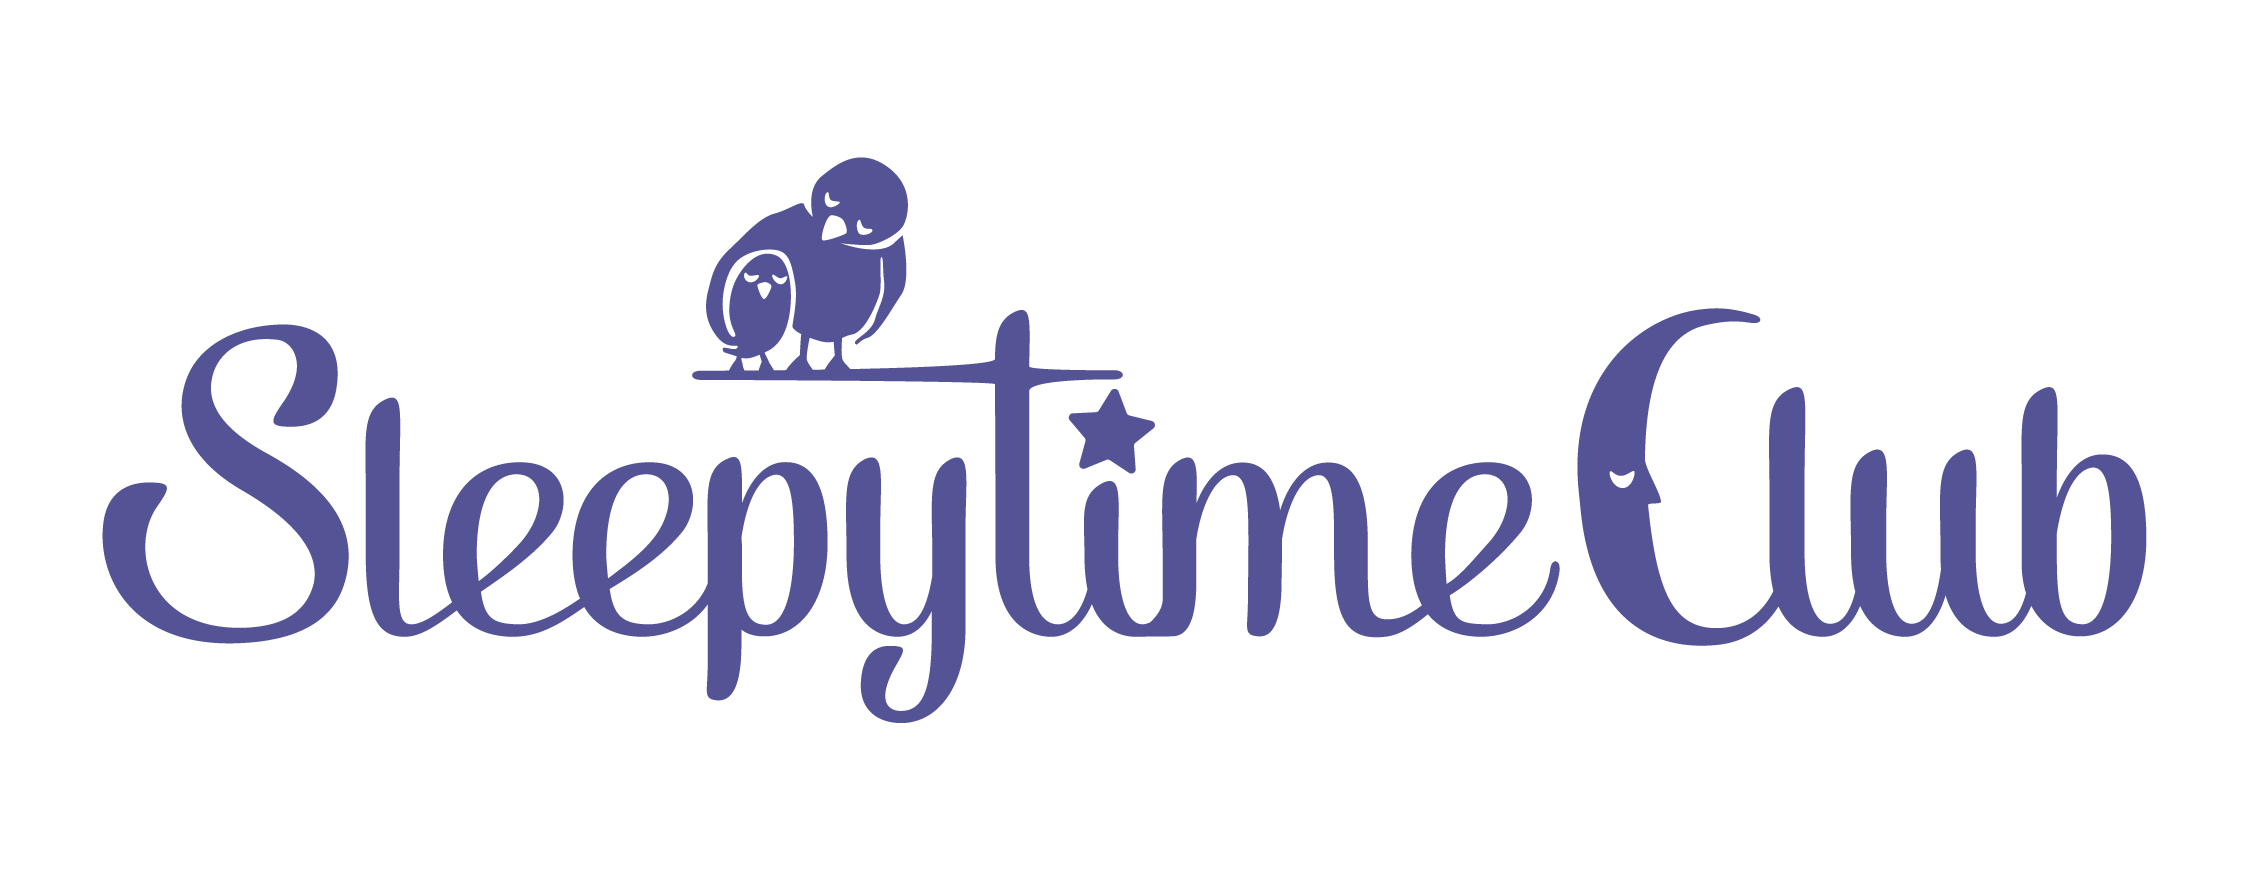 Sleepytime Club